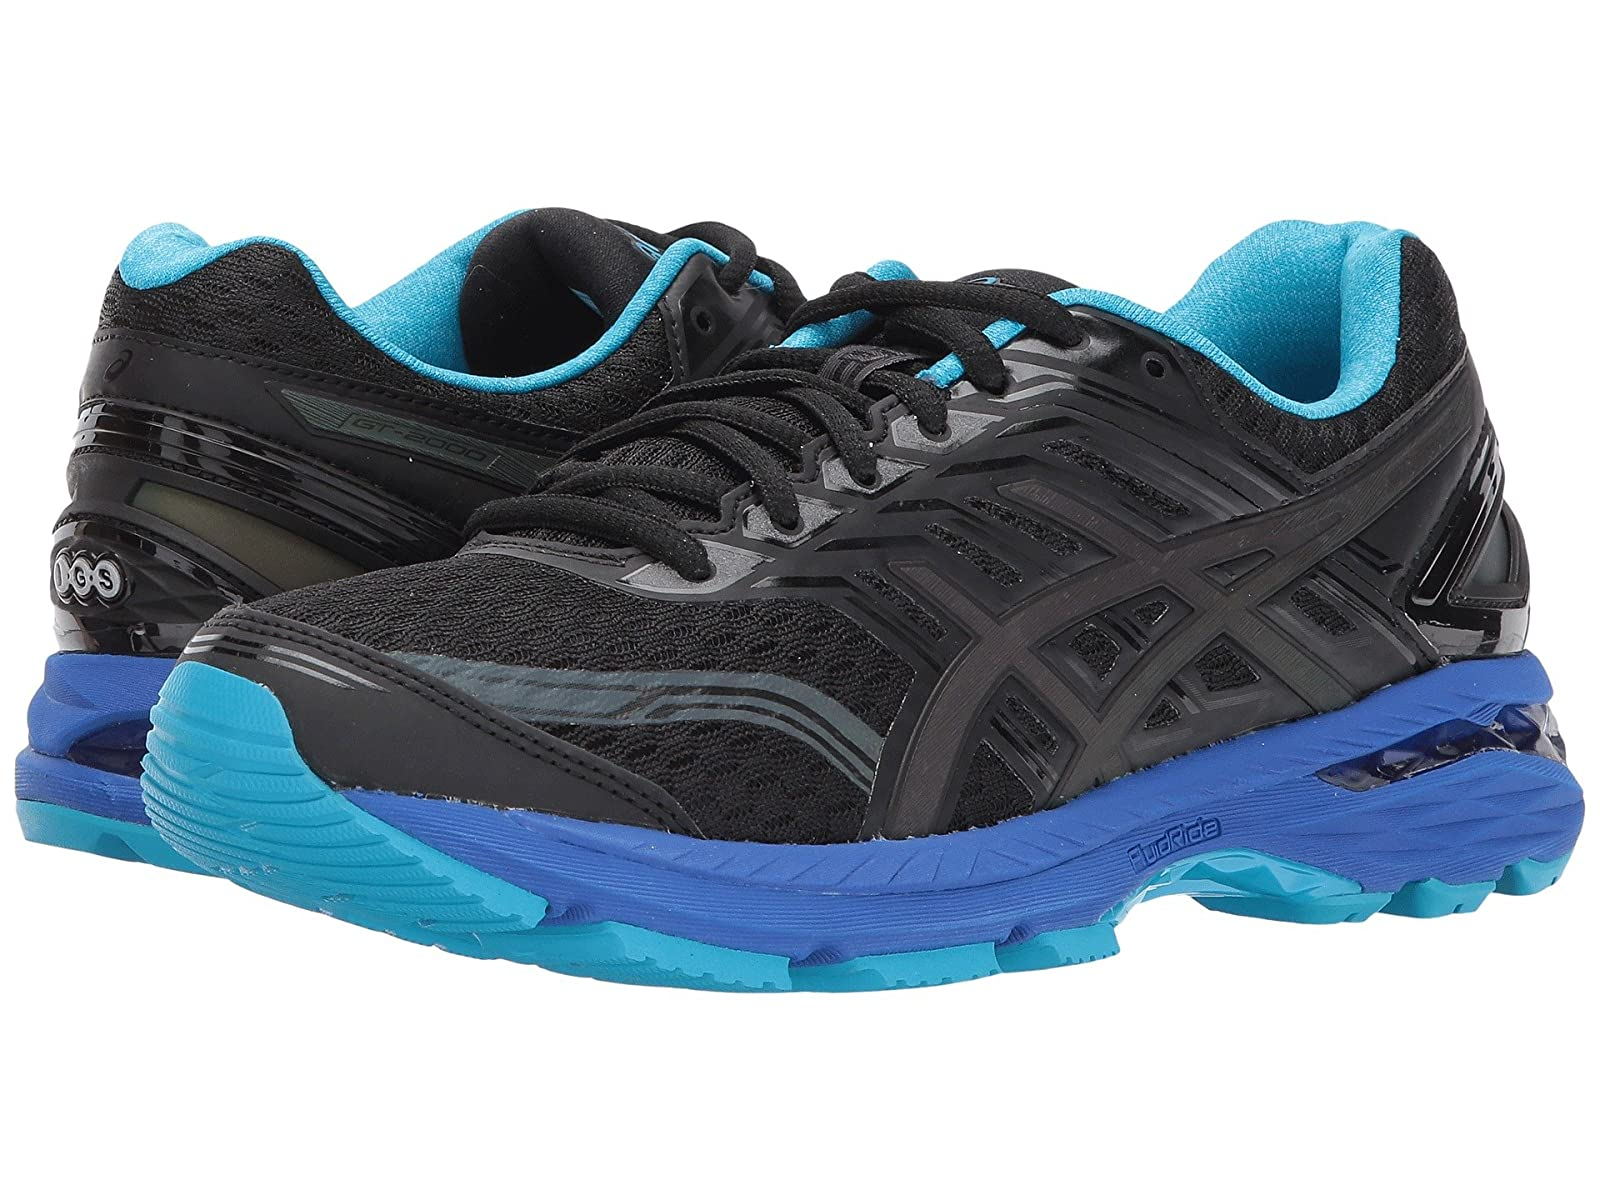 ASICS GT-2000 5 Lite-ShowCheap and distinctive eye-catching shoes